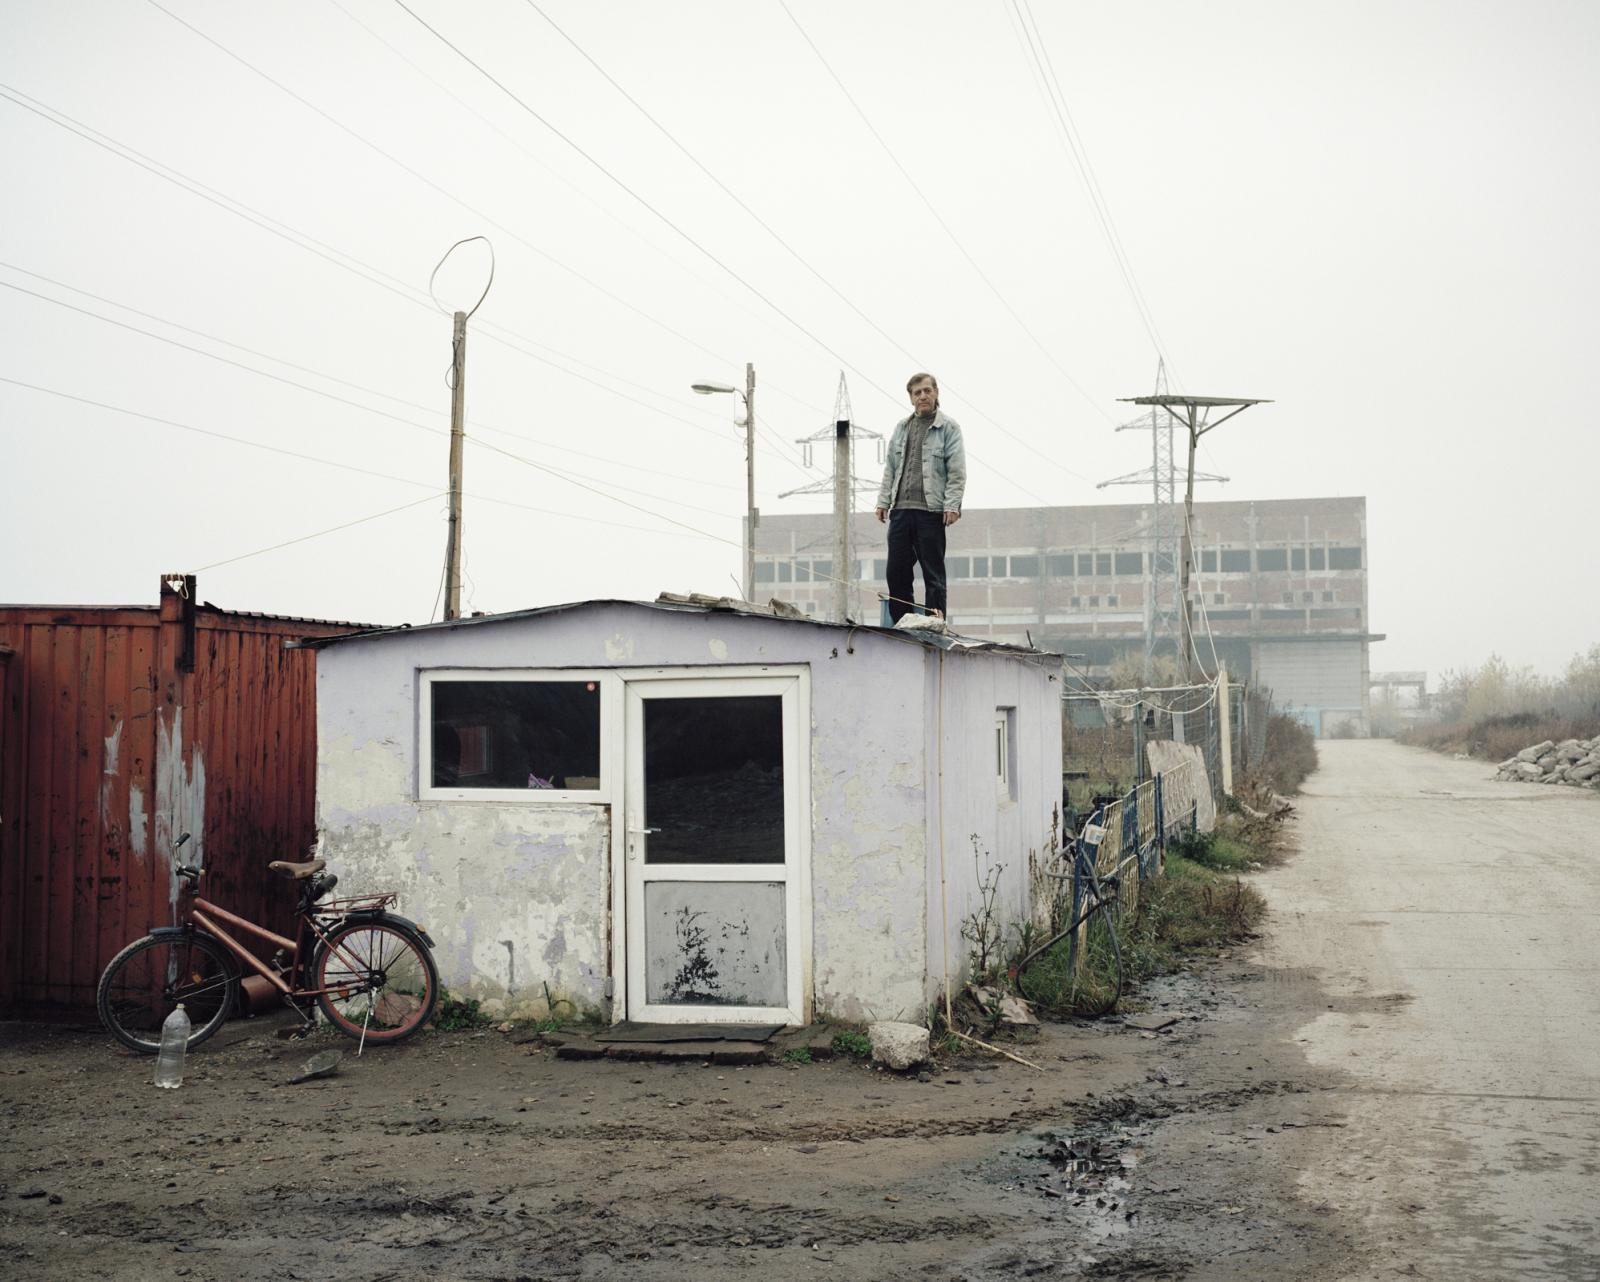 Romania, Giurgiu. A man working as security guard stand on a barrack in front of an abandoned factory that he watch.